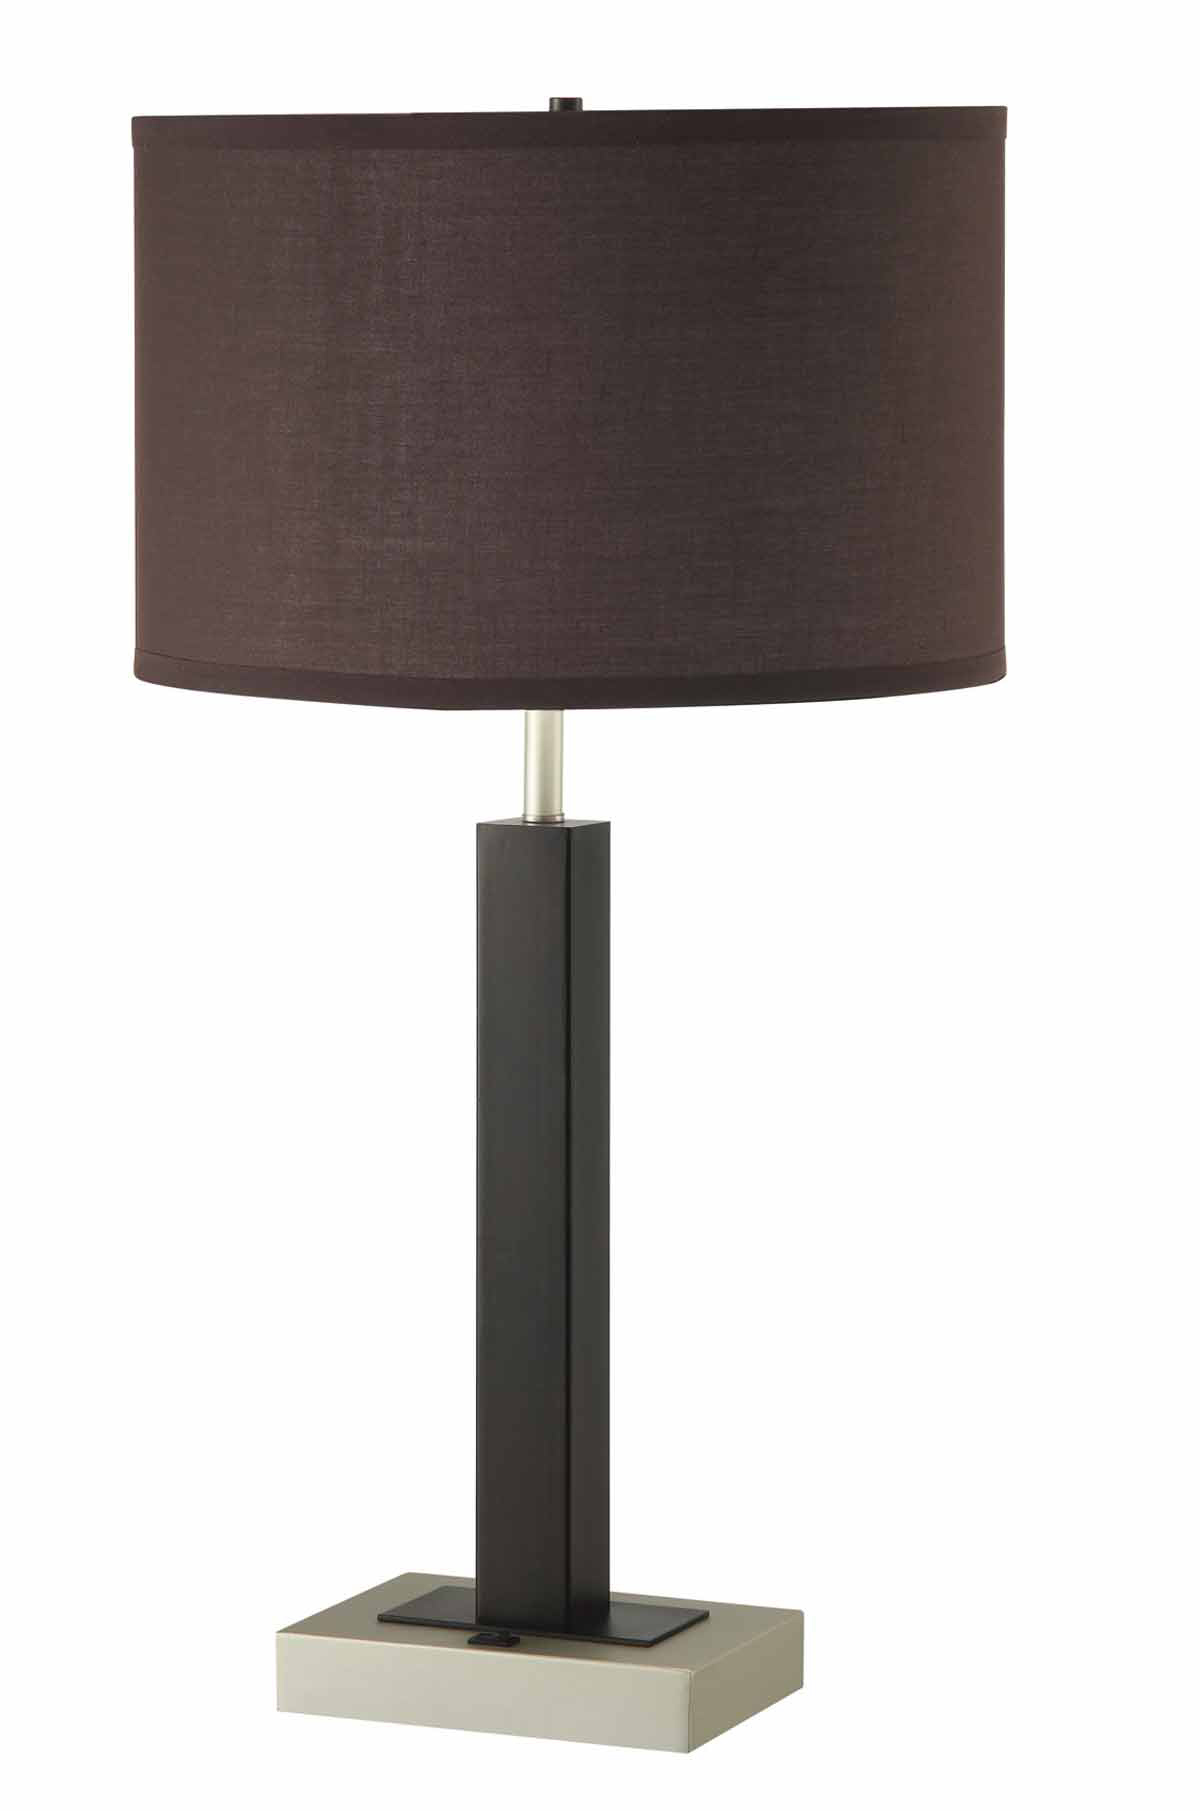 Coaster 901542 Table Lamp - Coffee